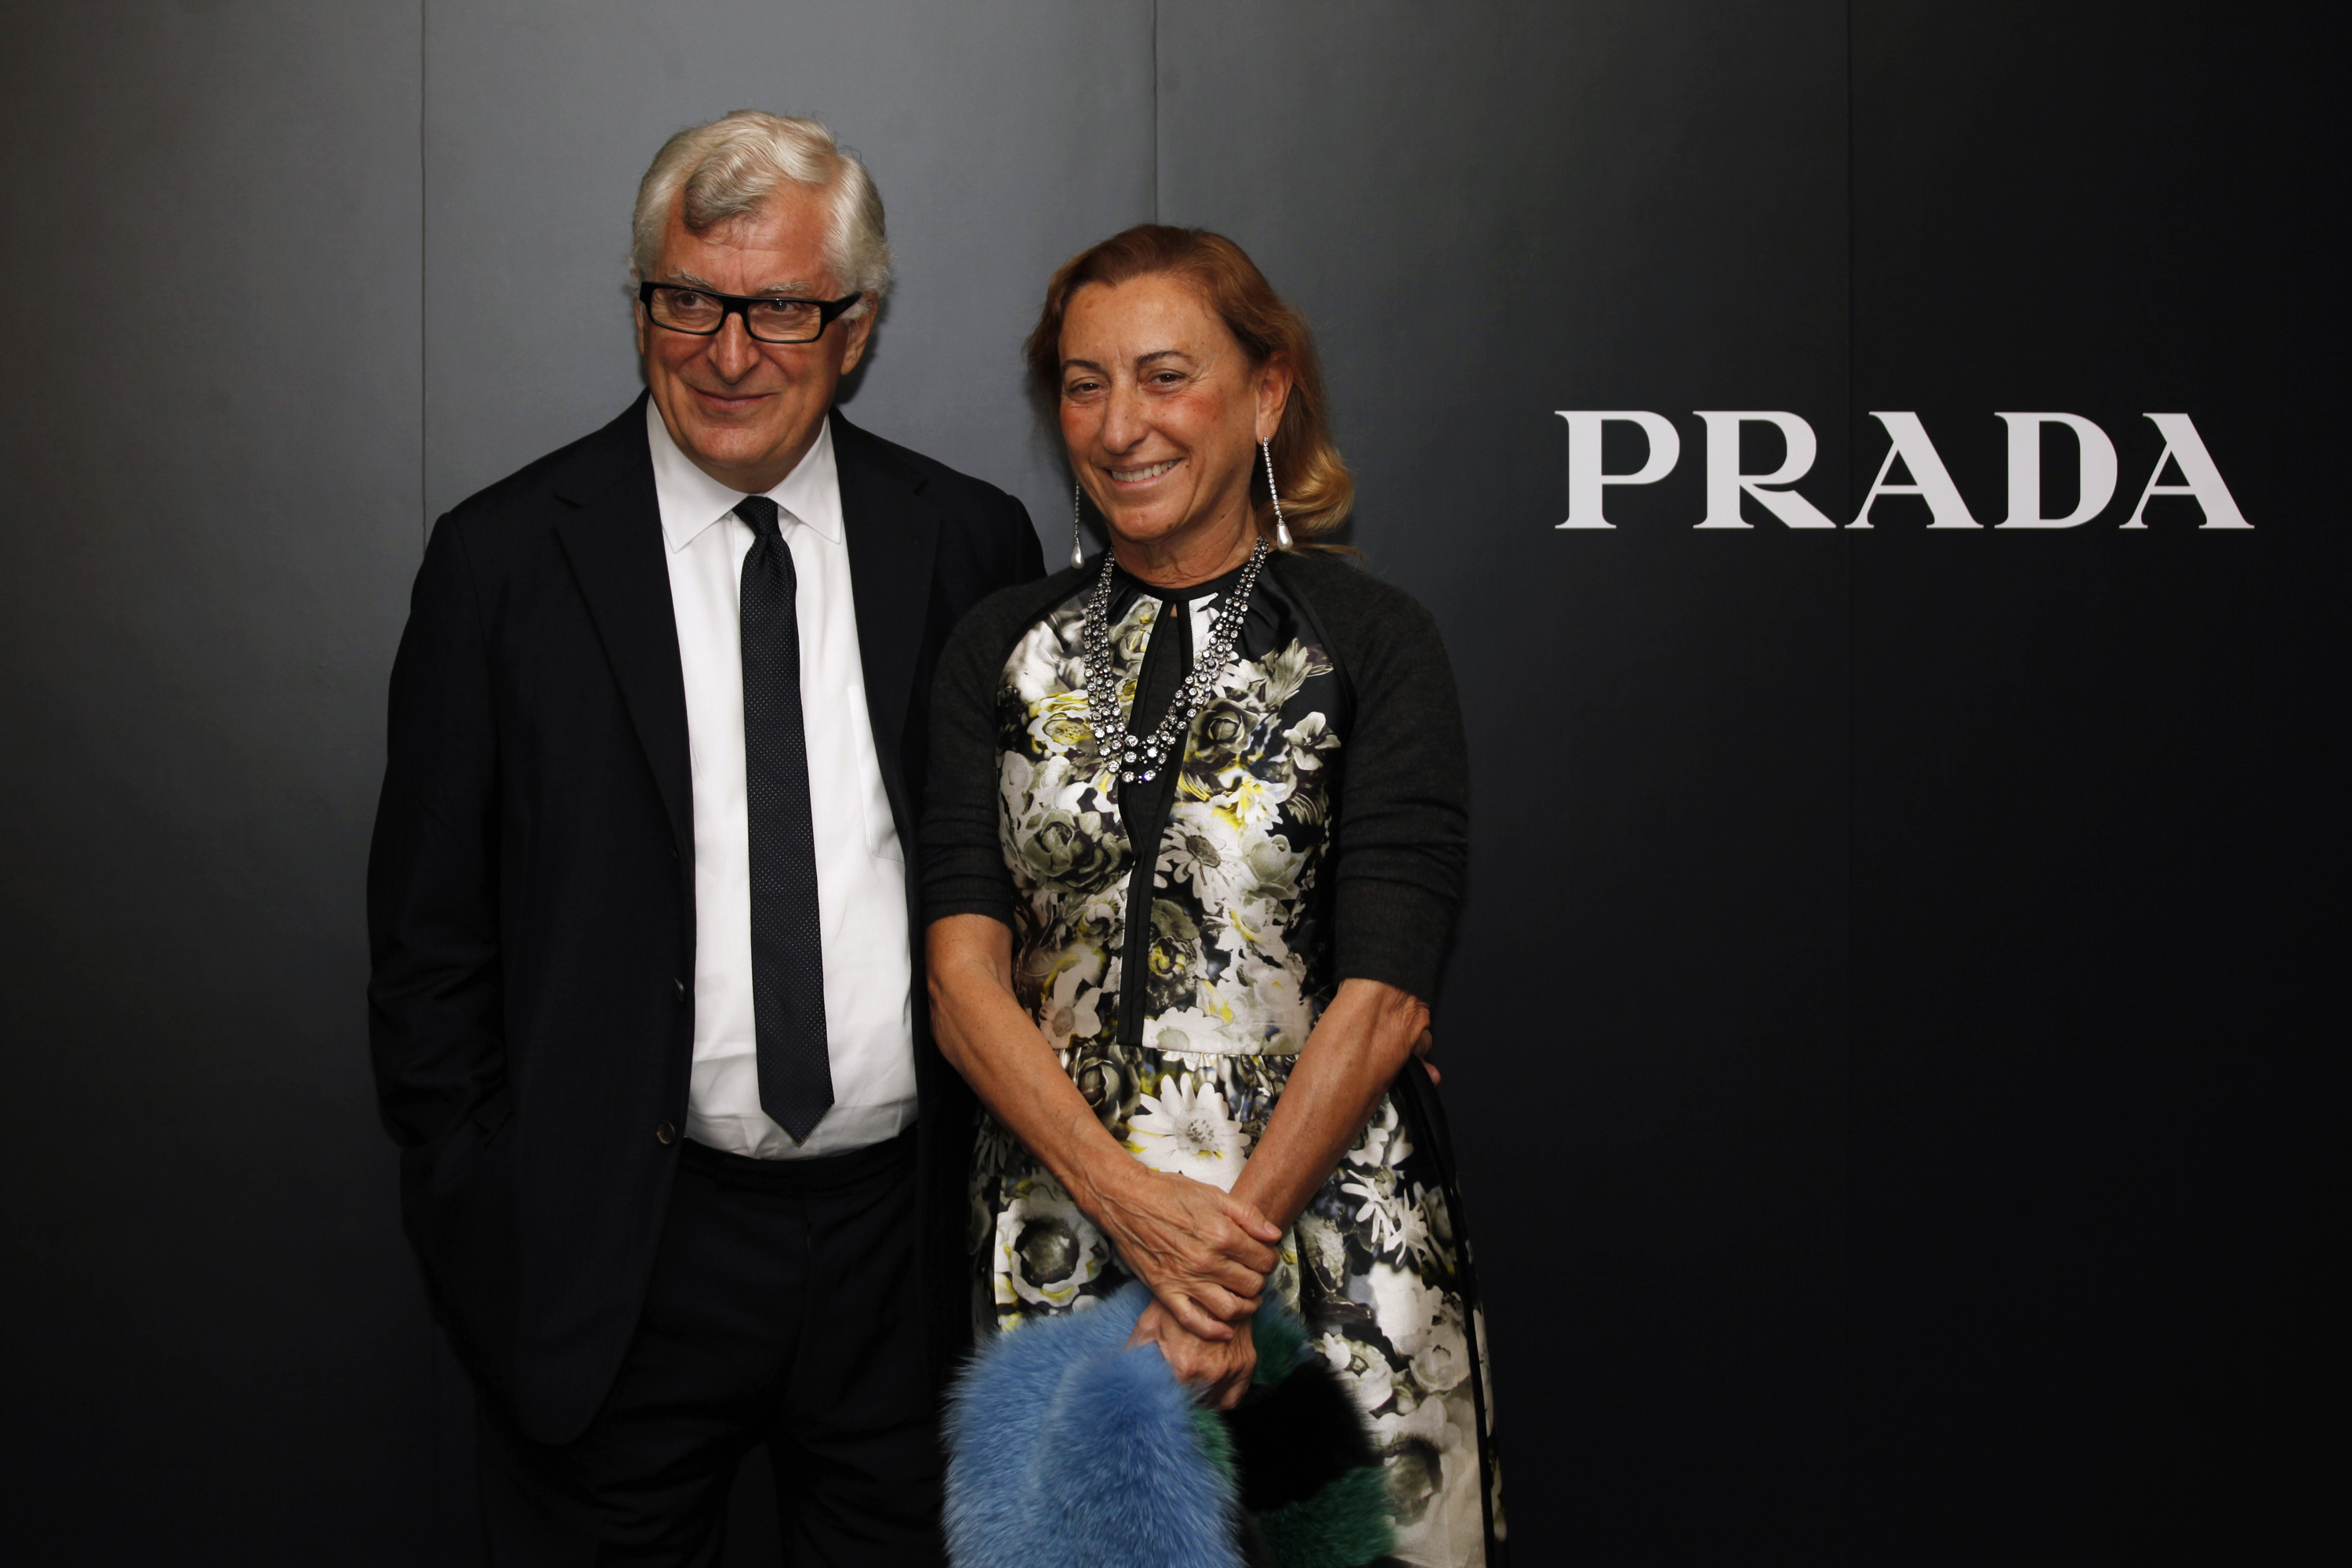 Prada's Chief Executive Patrizio Bertelli poses with his wife, fashion designer Prada, after attending fashion show in Hong Kong